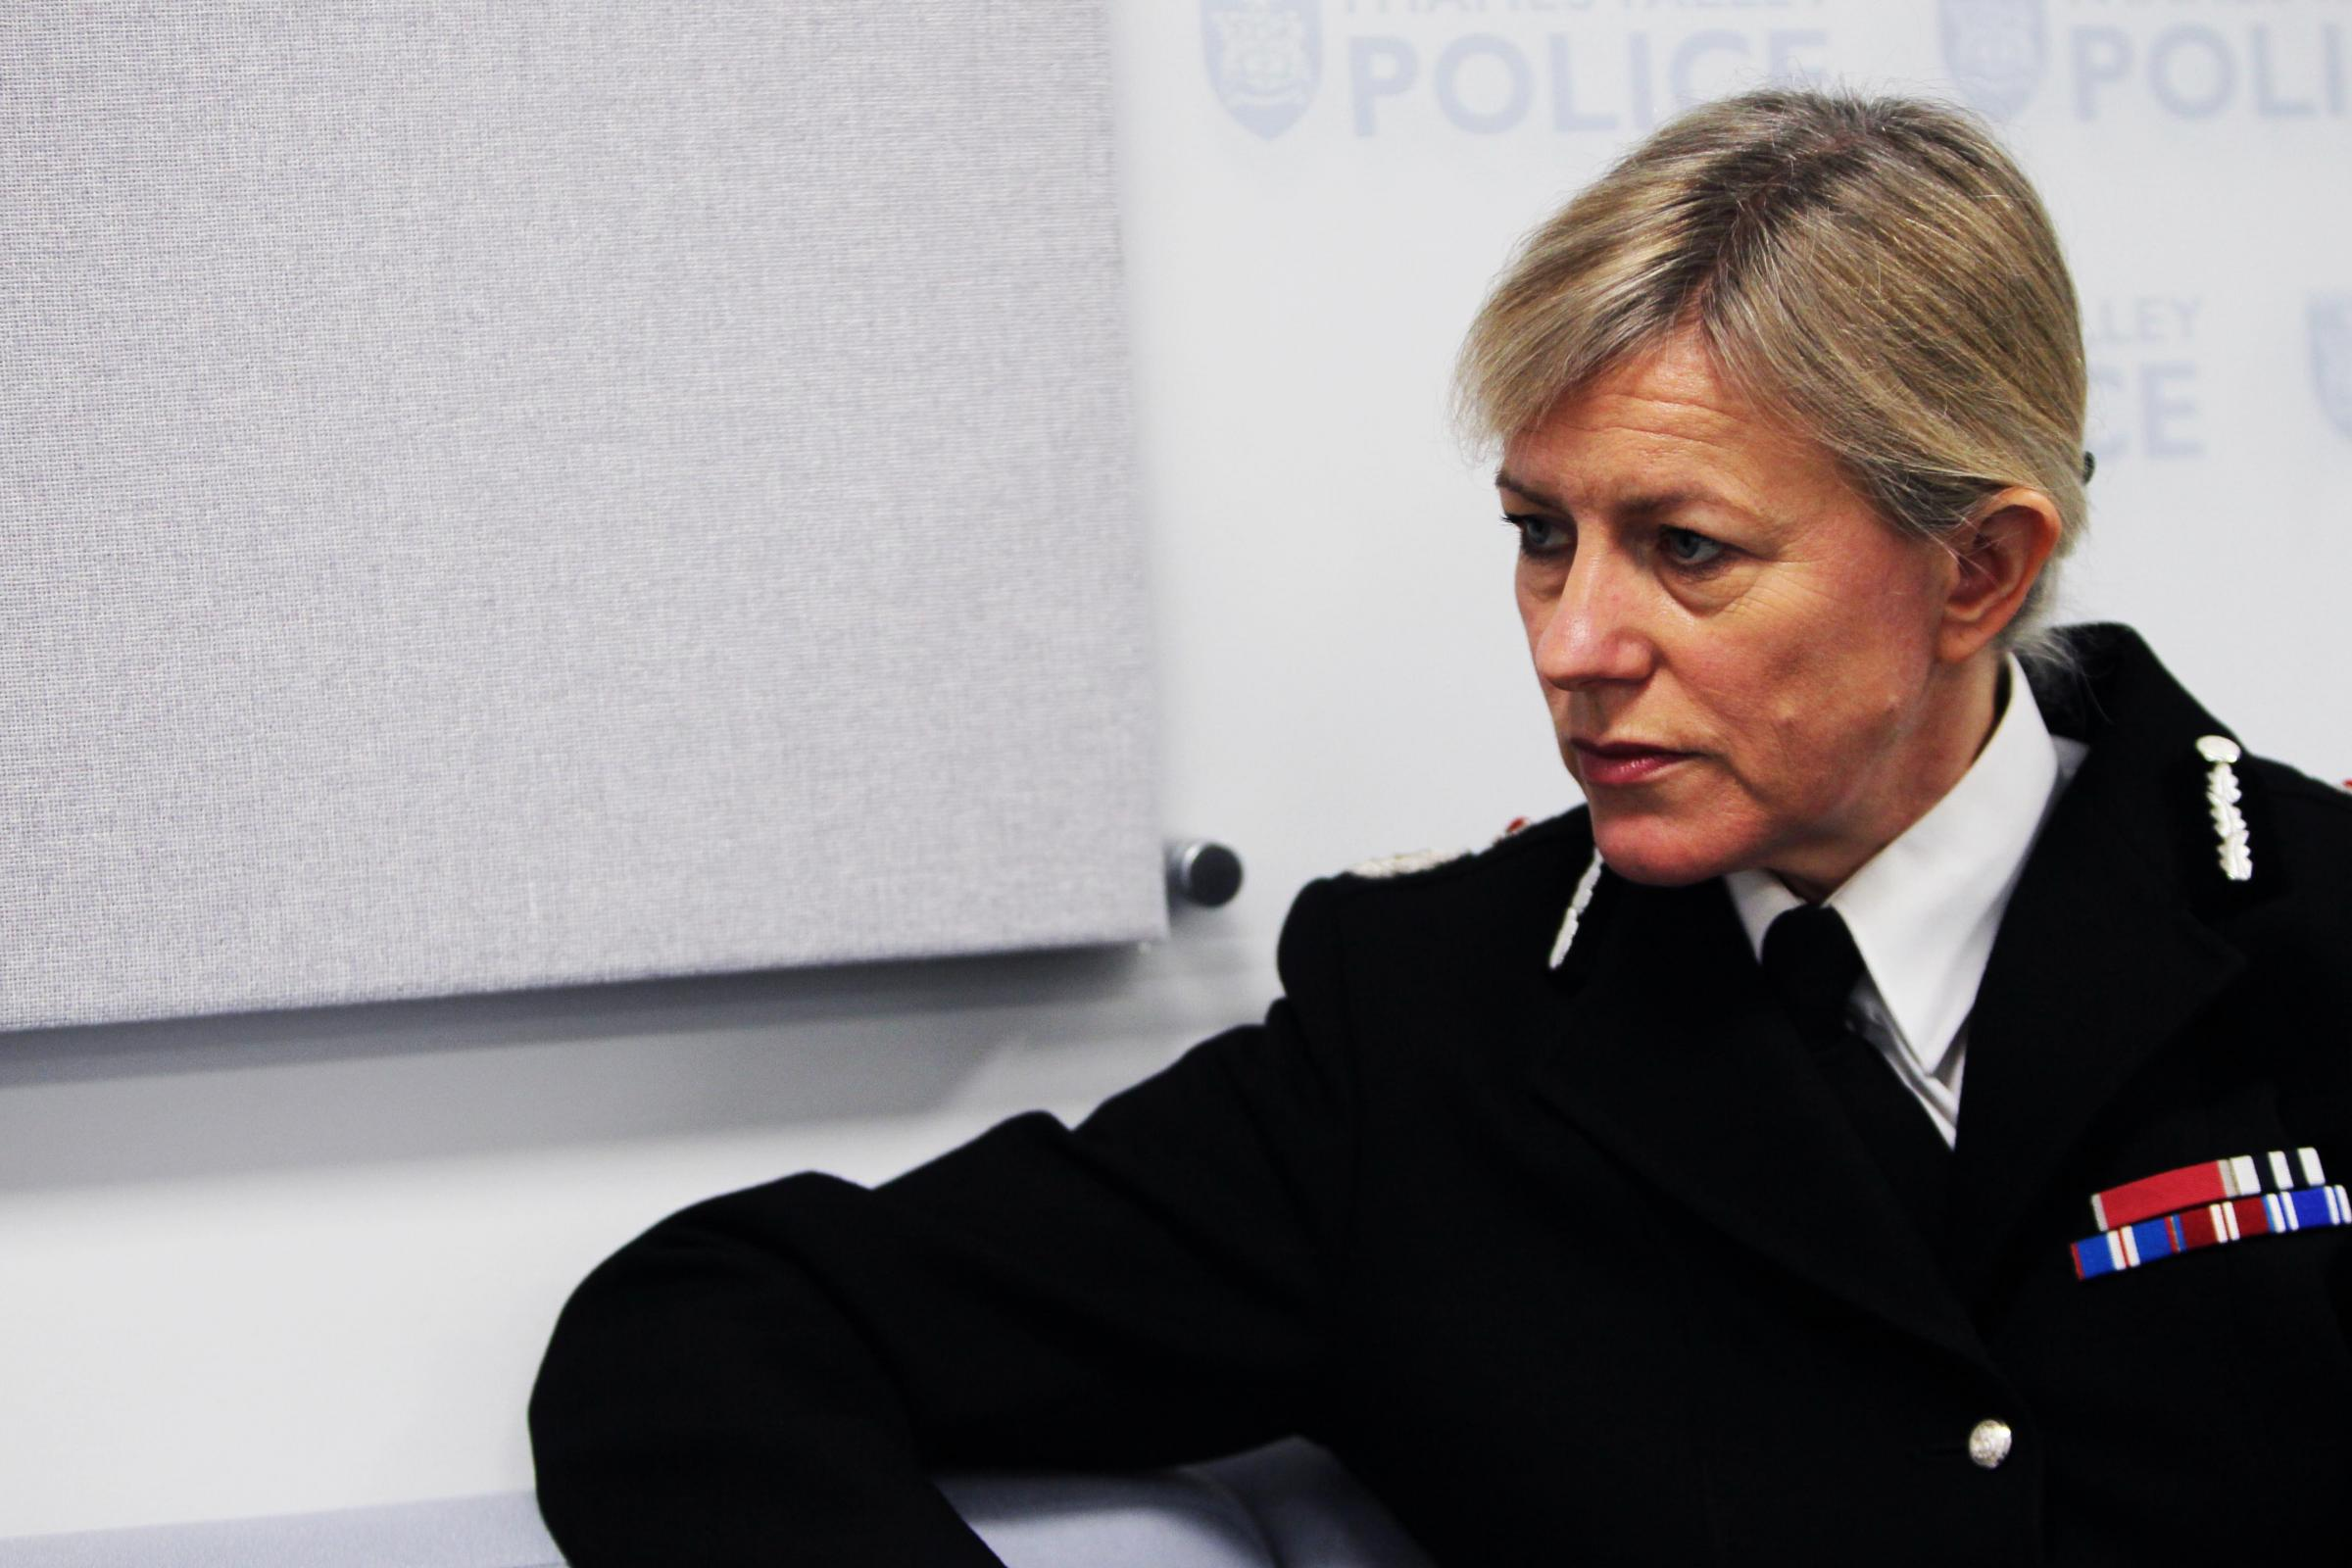 Former Thames Valley Police Chief Constable Sara Thornton